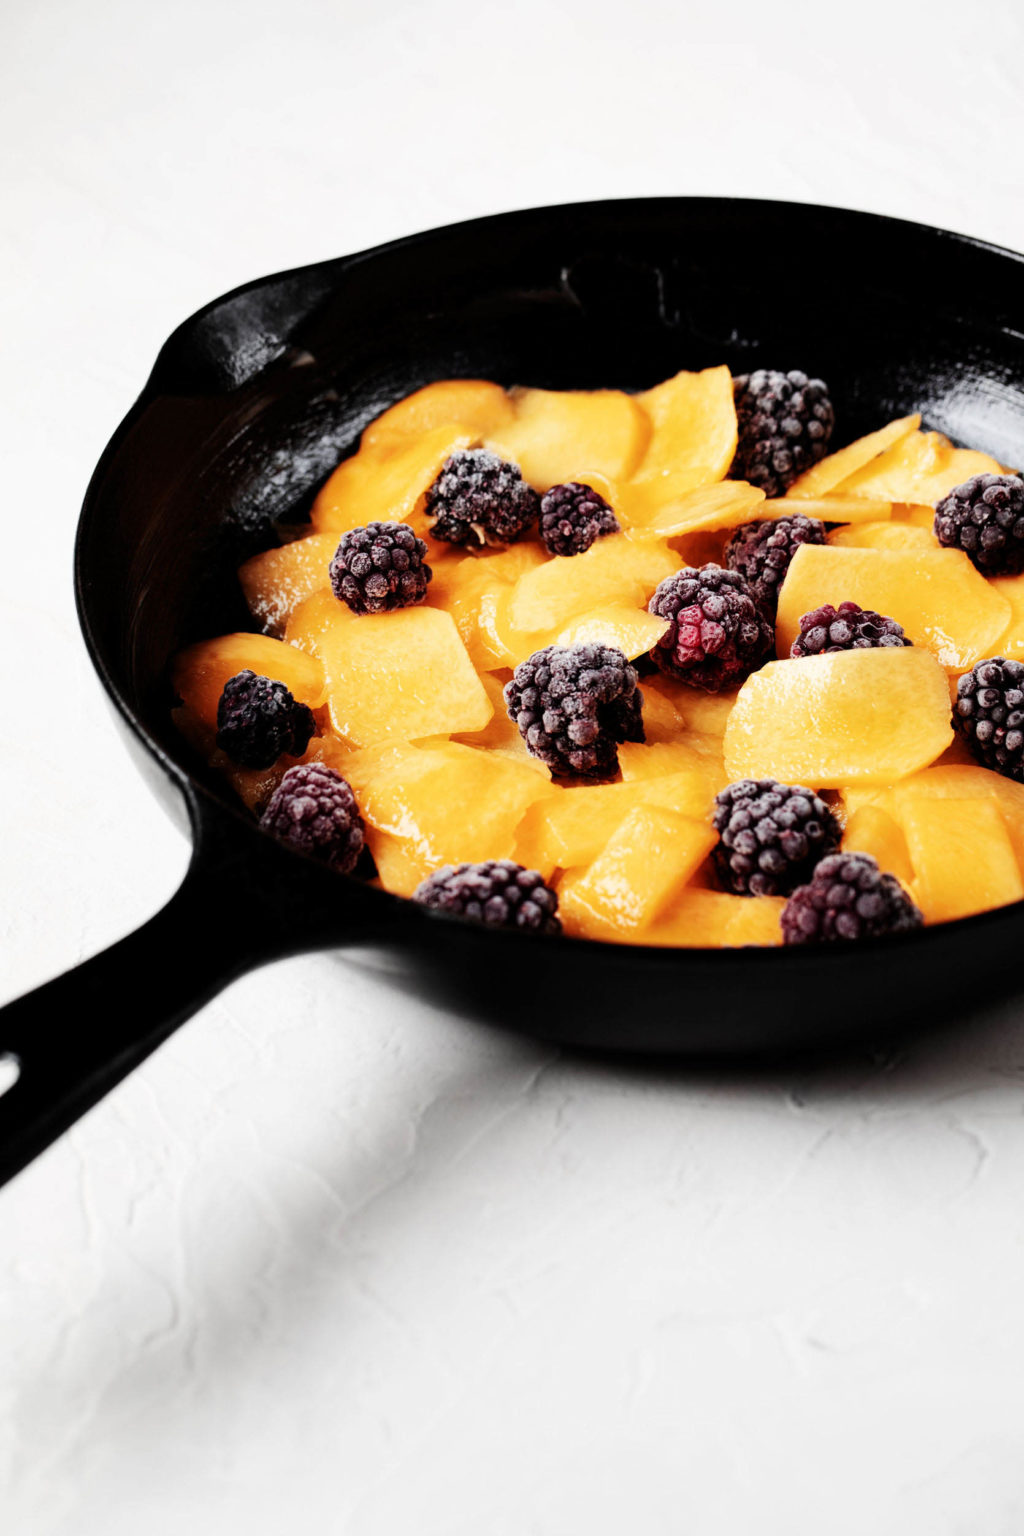 A black, cast iron skillet has been filled with peaches and blackberries. It rests on a white surface.